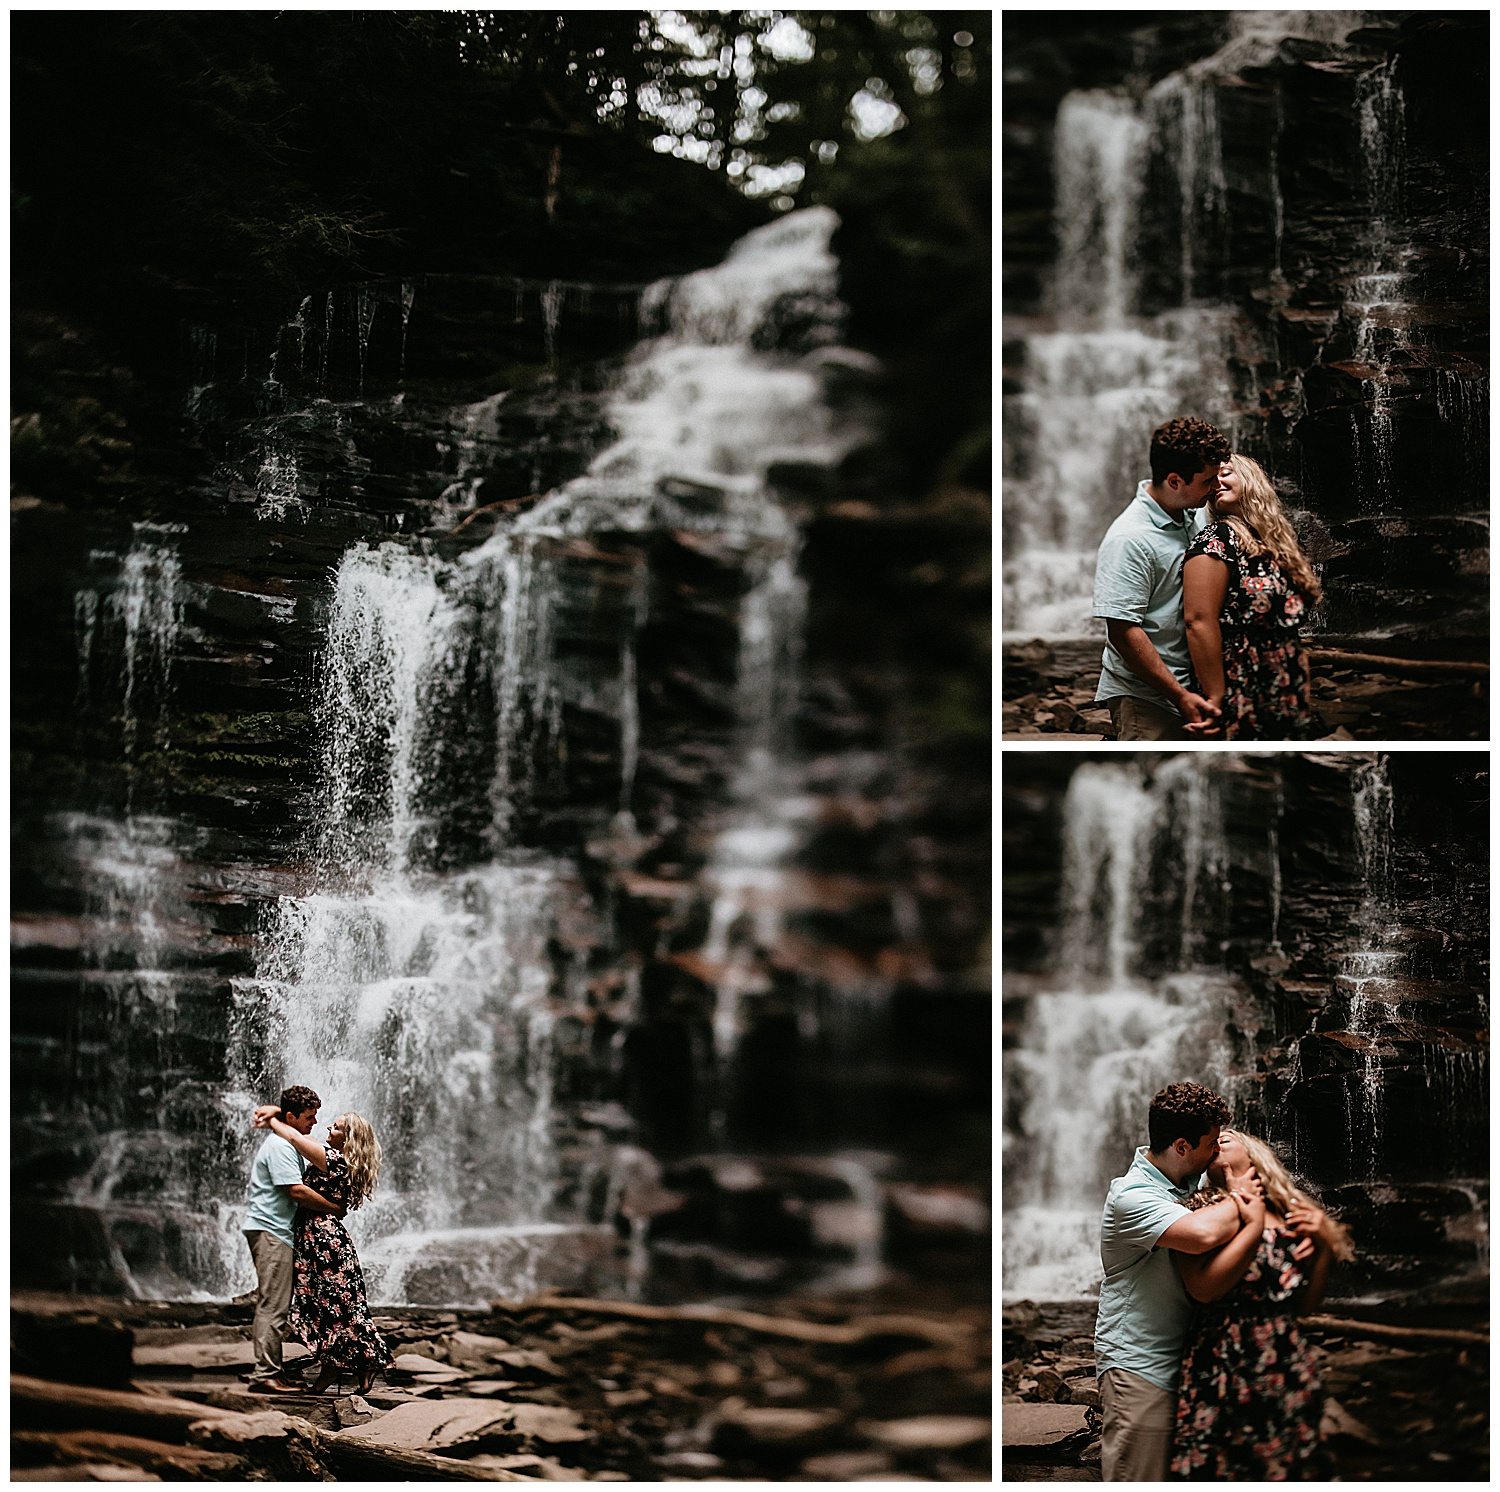 NEPA-Bloomsburg-Lehigh-Valley-Wedding-Photographer-Engagement-session-at-Ricketts-Glen-State-Park_0019.jpg